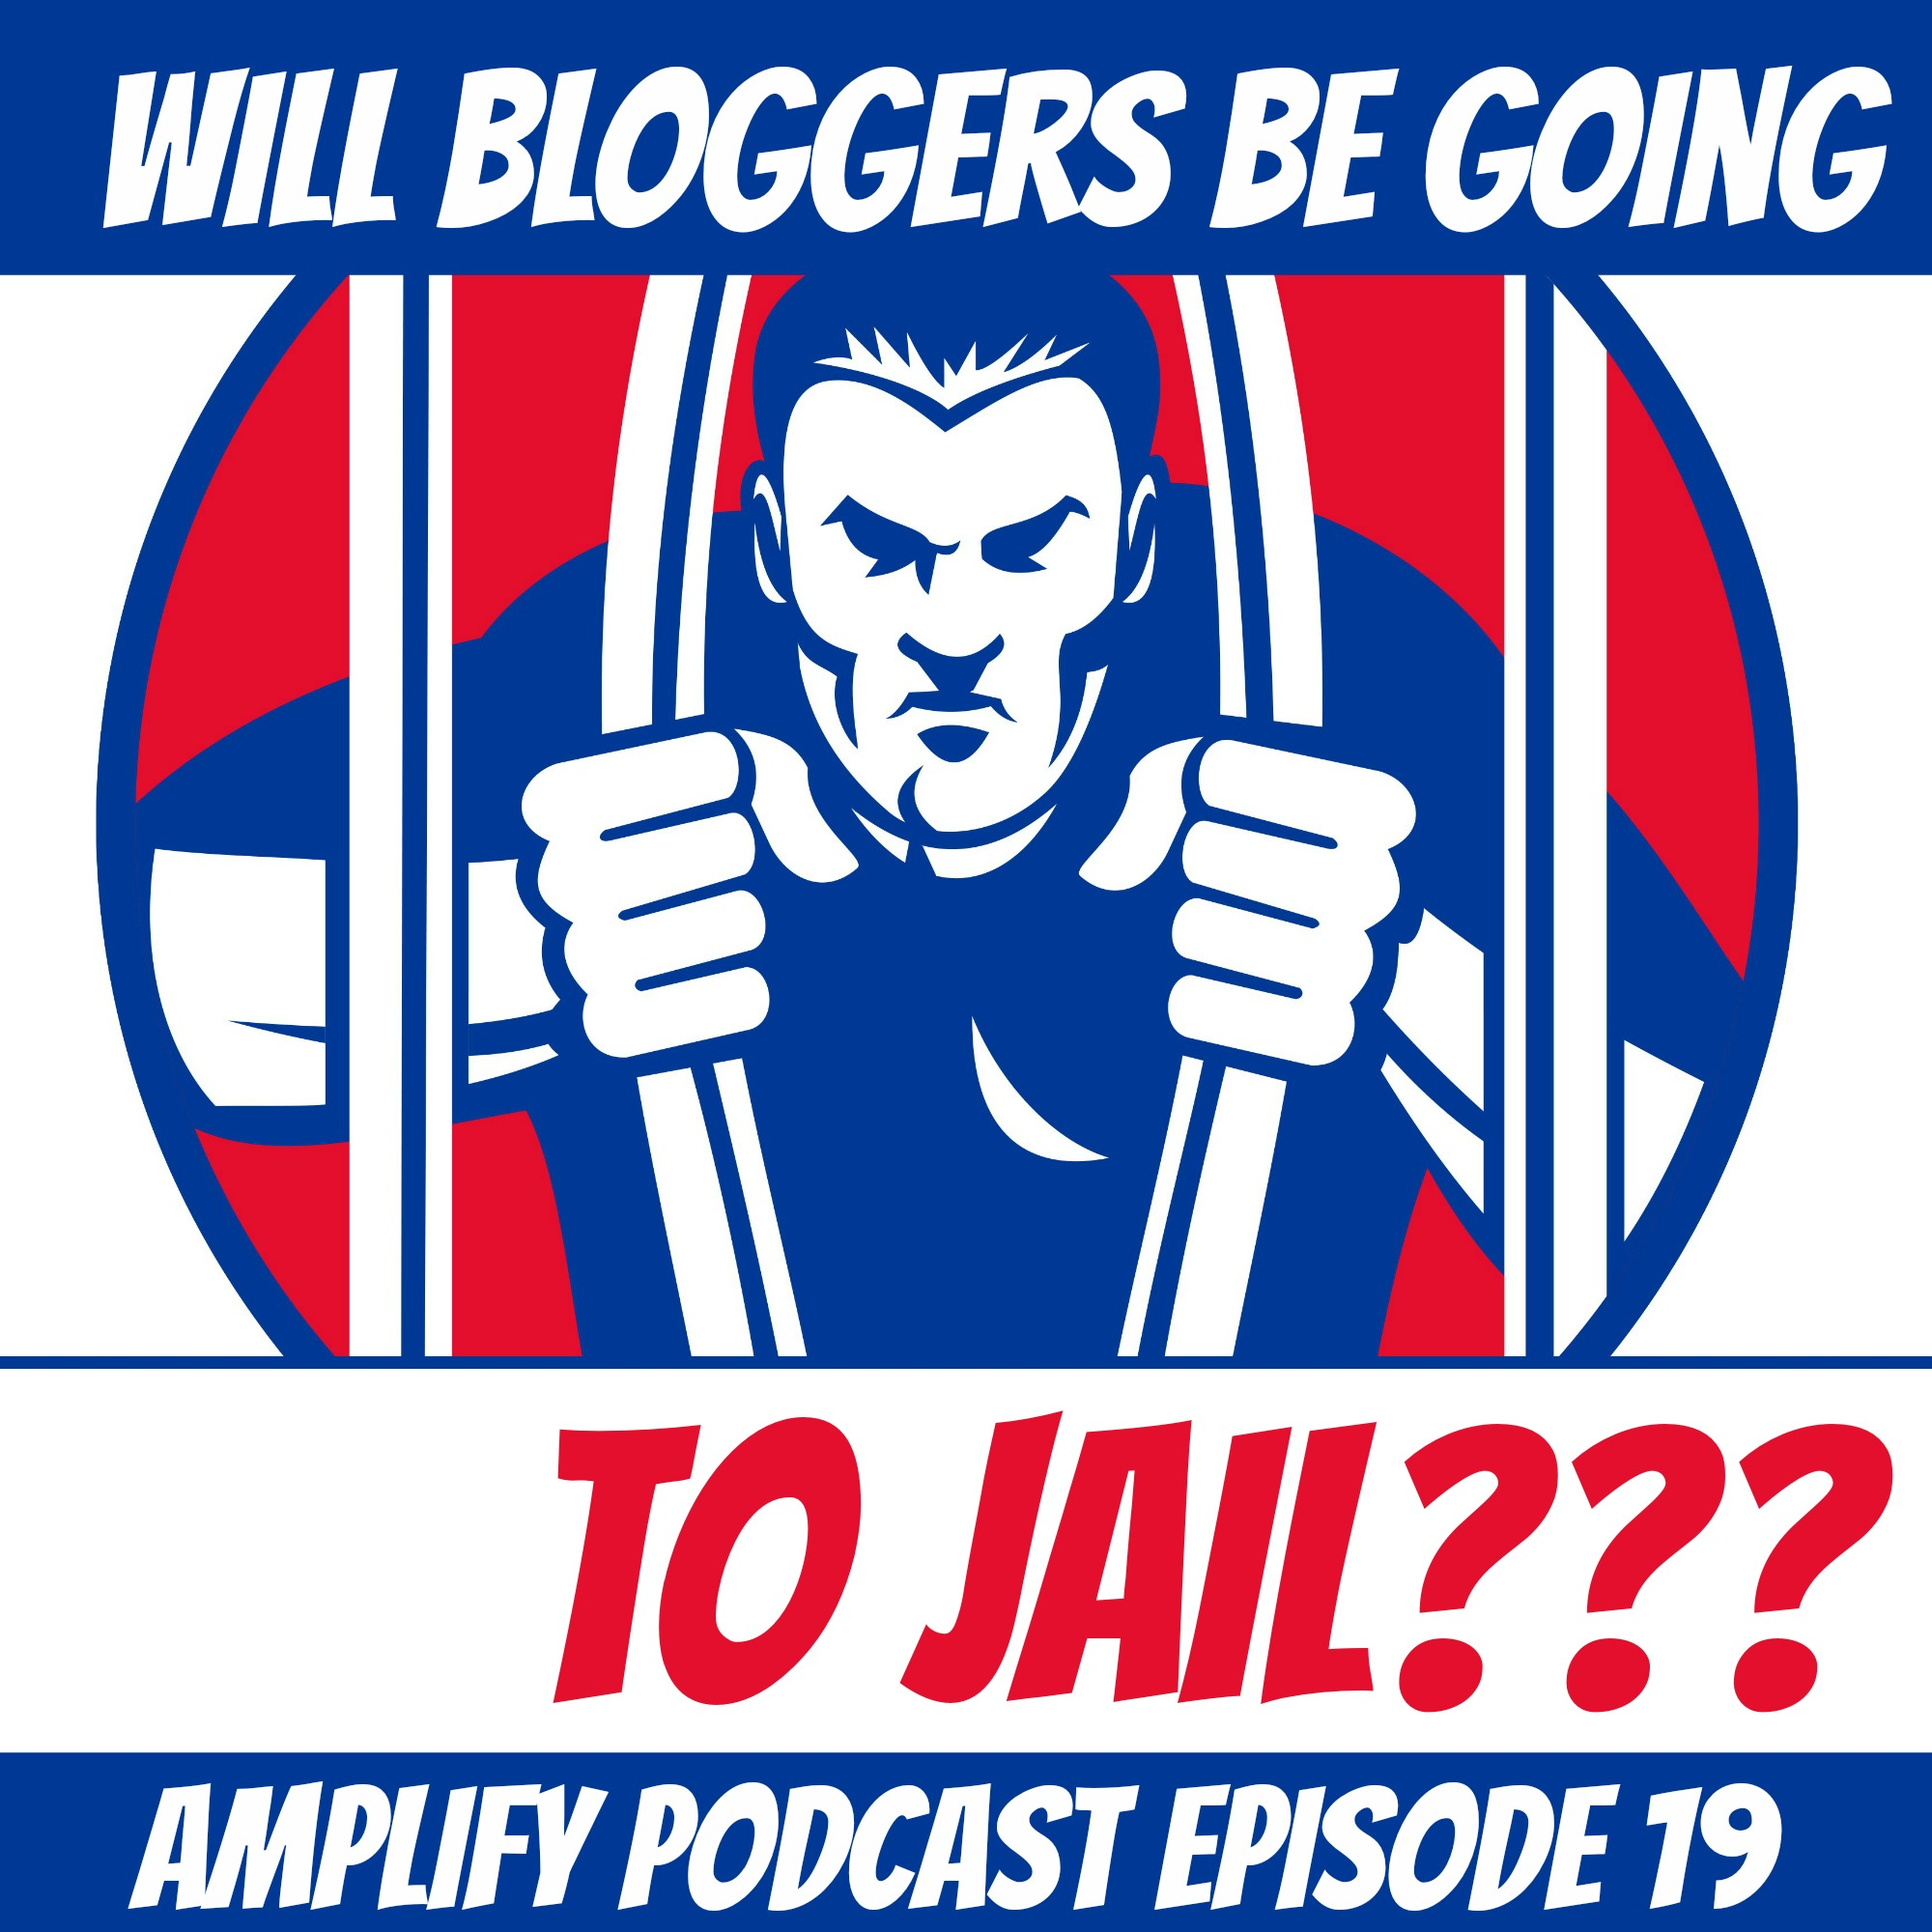 Will Bloggers Be Going to Jail?